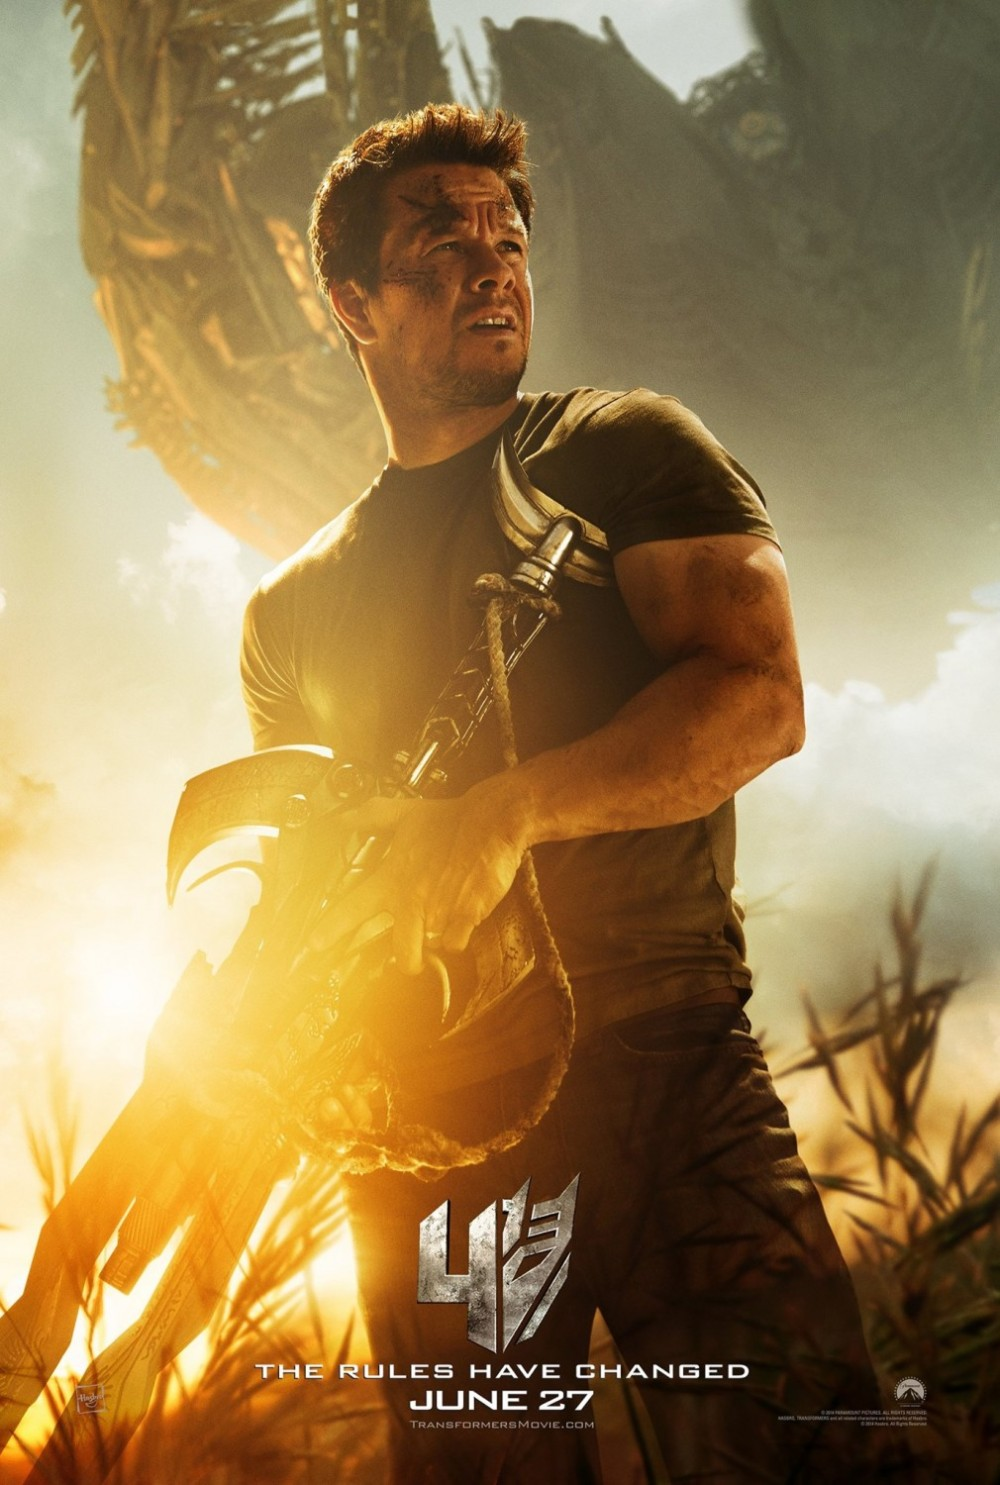 Transformers Mark Wahlberg Extinction poster